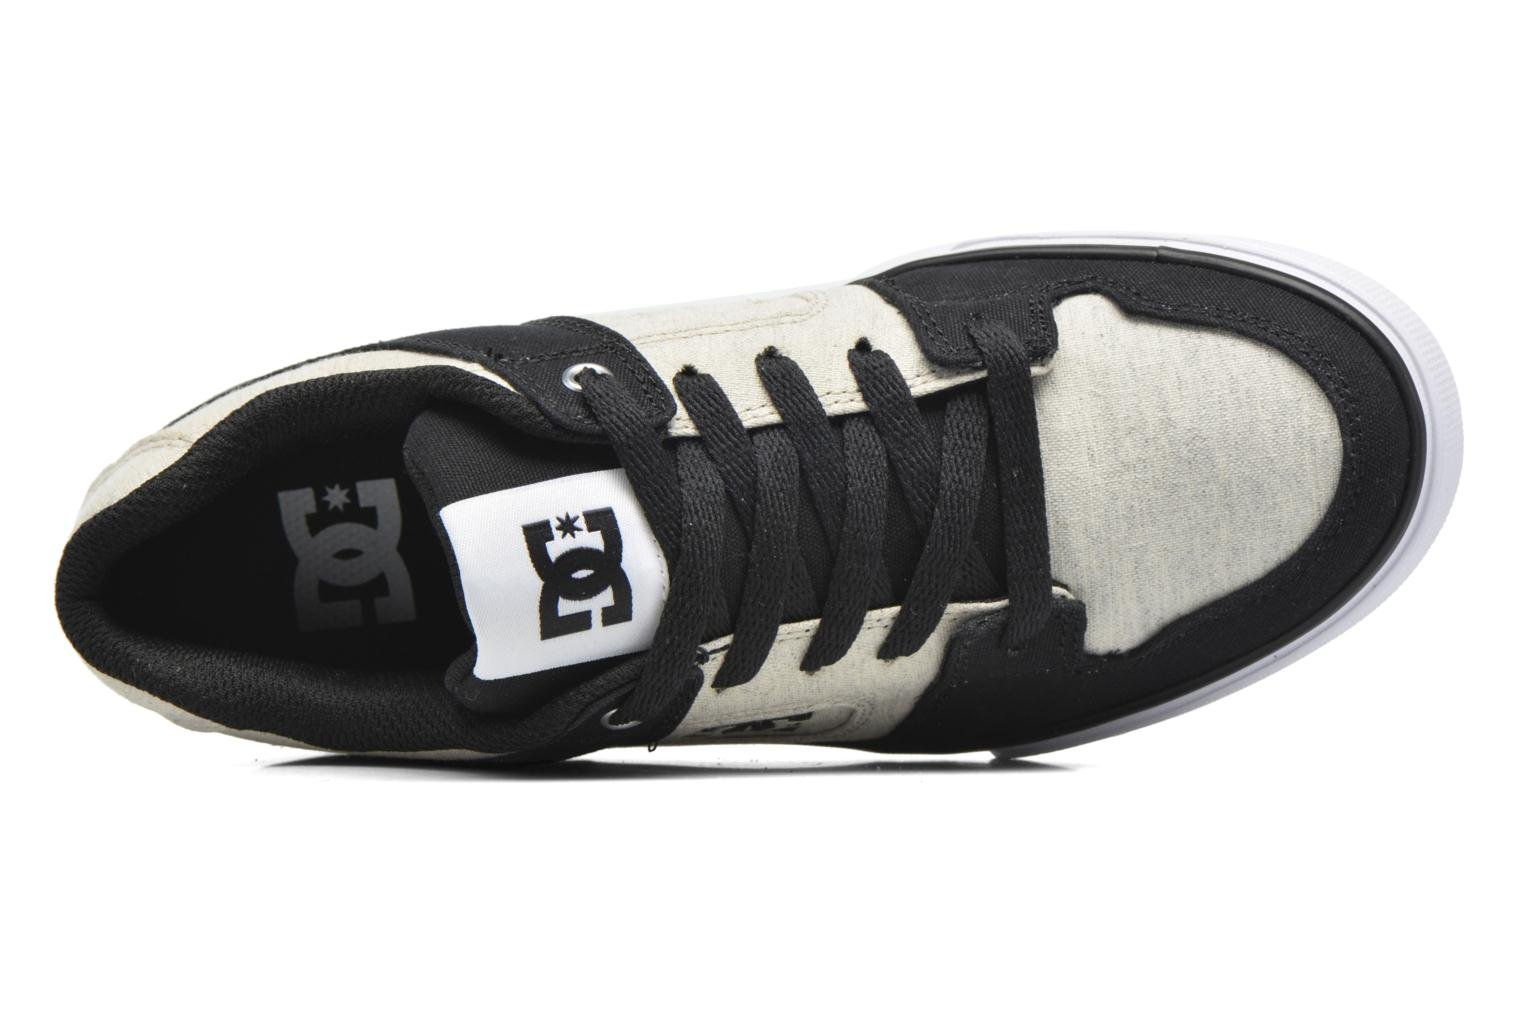 PURE B Black / White / Black